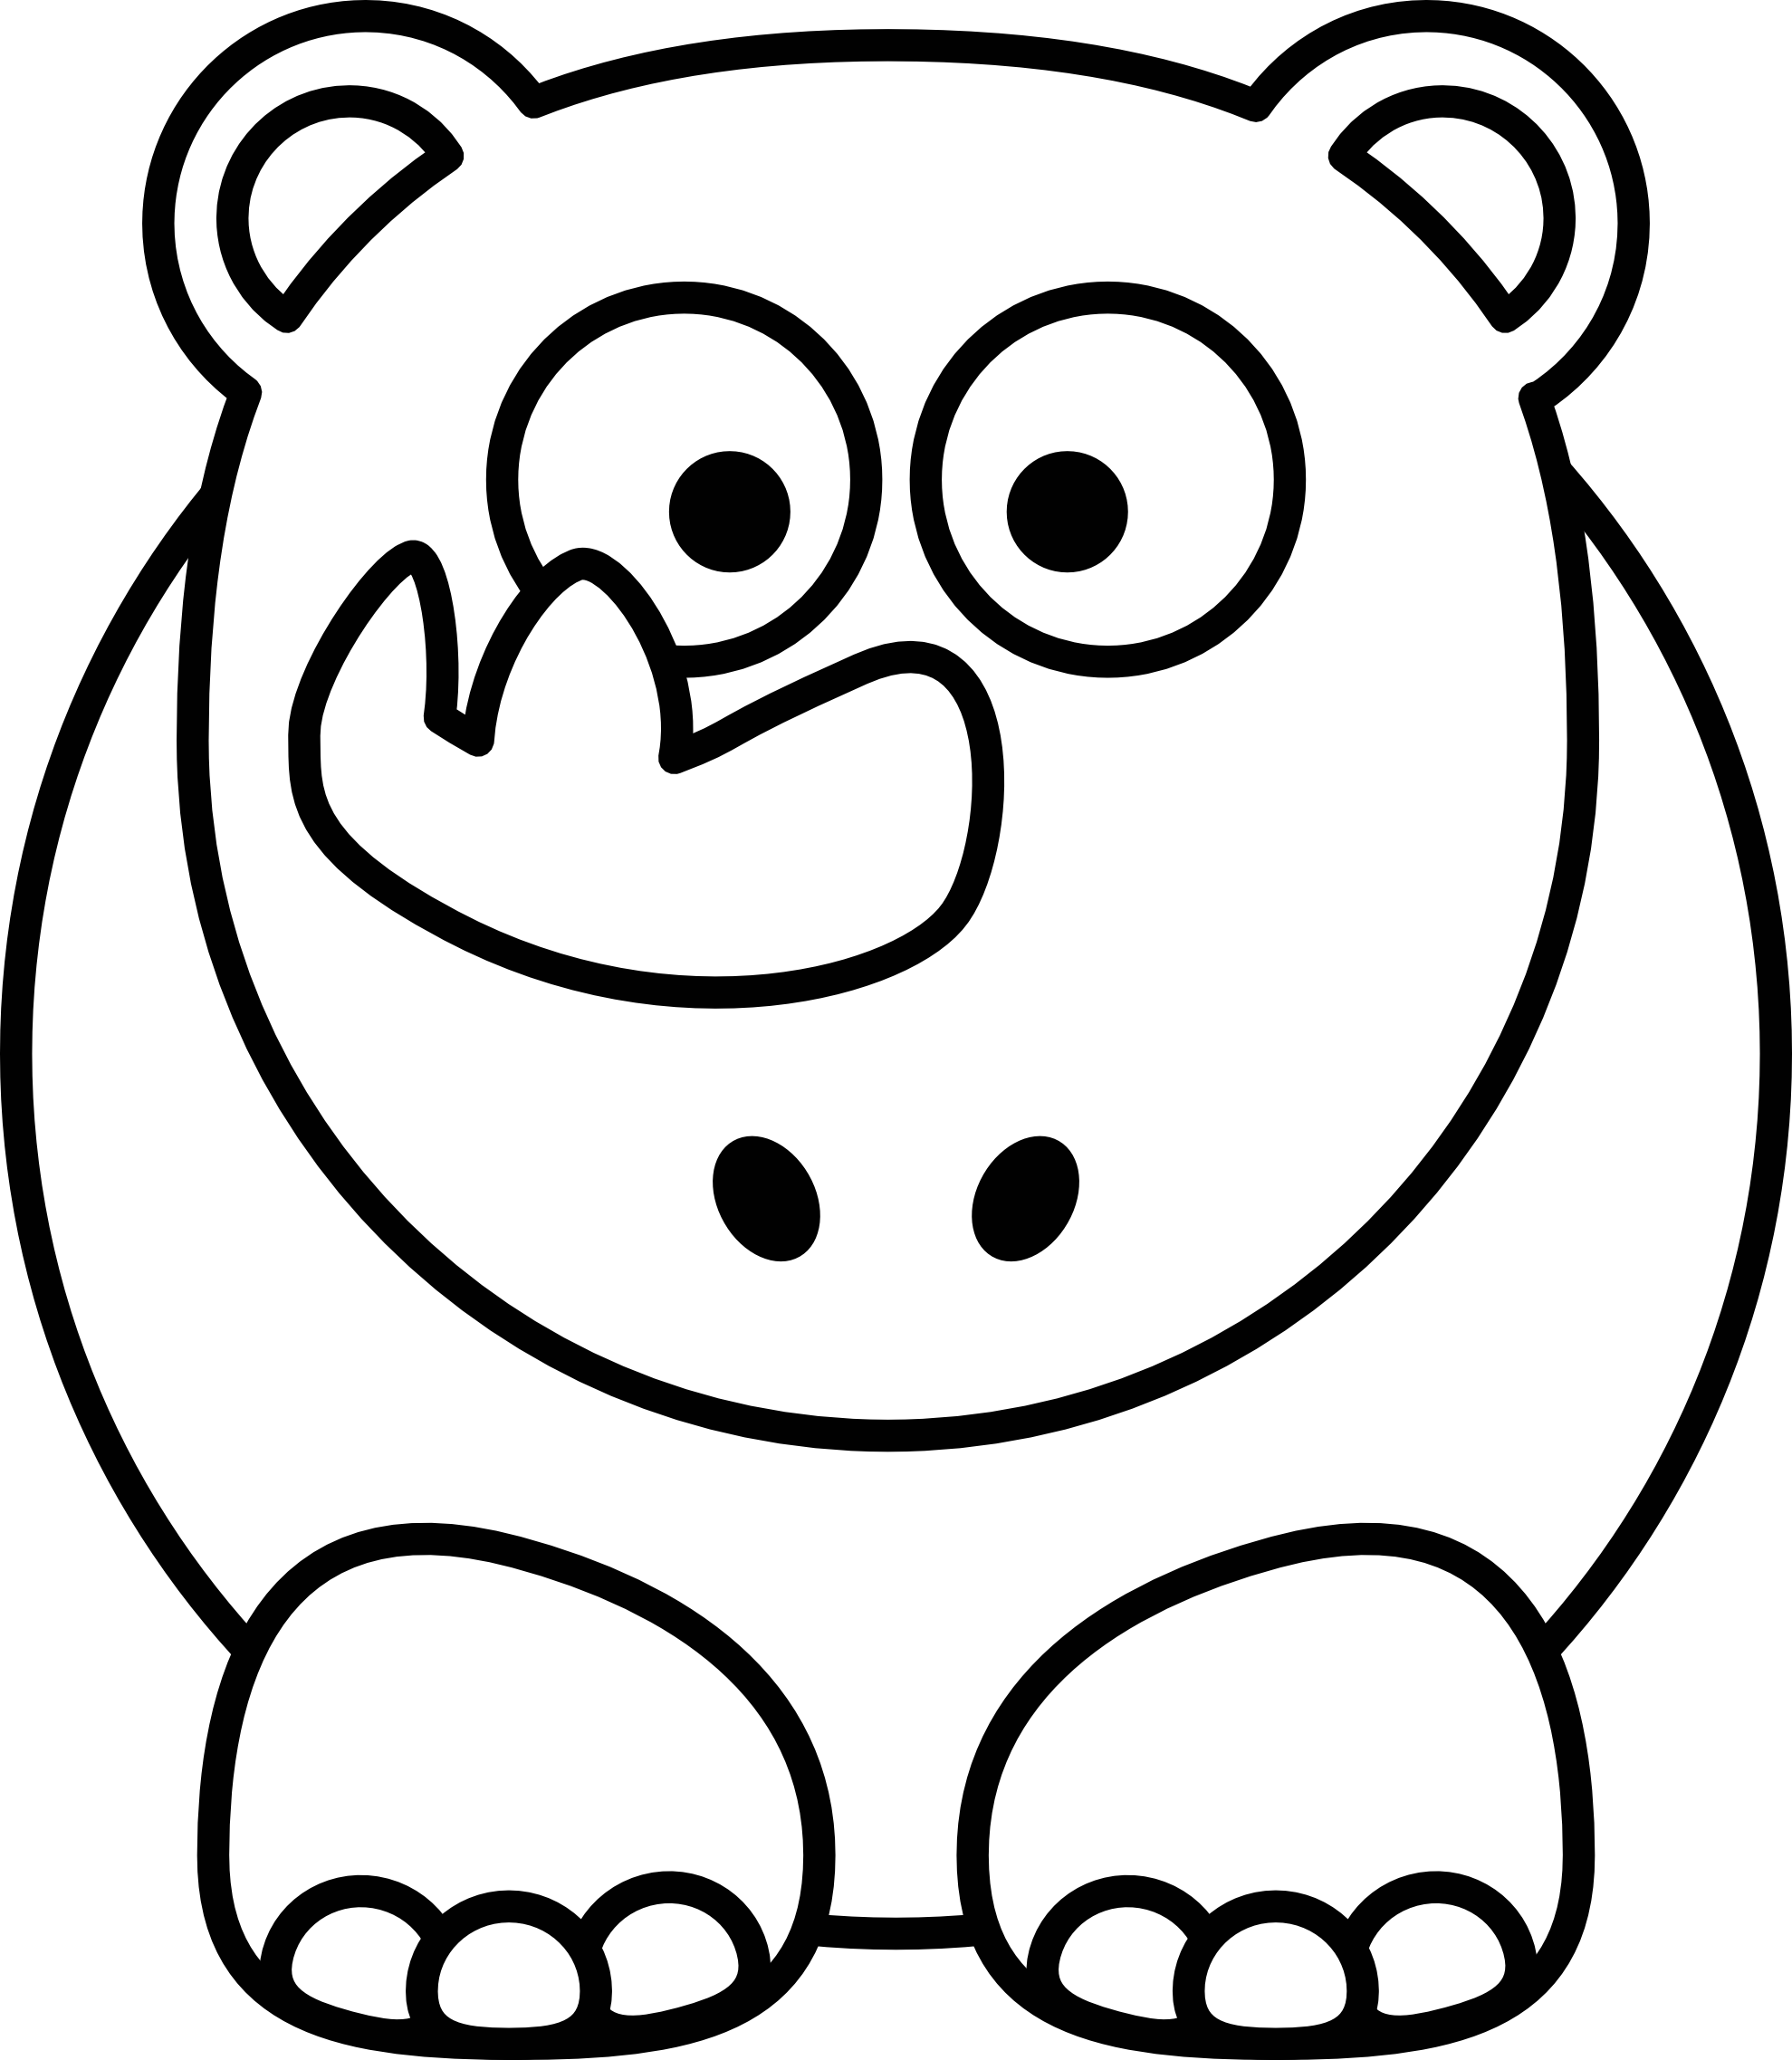 Free clipart black and white cute animal clip freeuse download Free Animal Black And White, Download Free Clip Art, Free Clip Art ... clip freeuse download